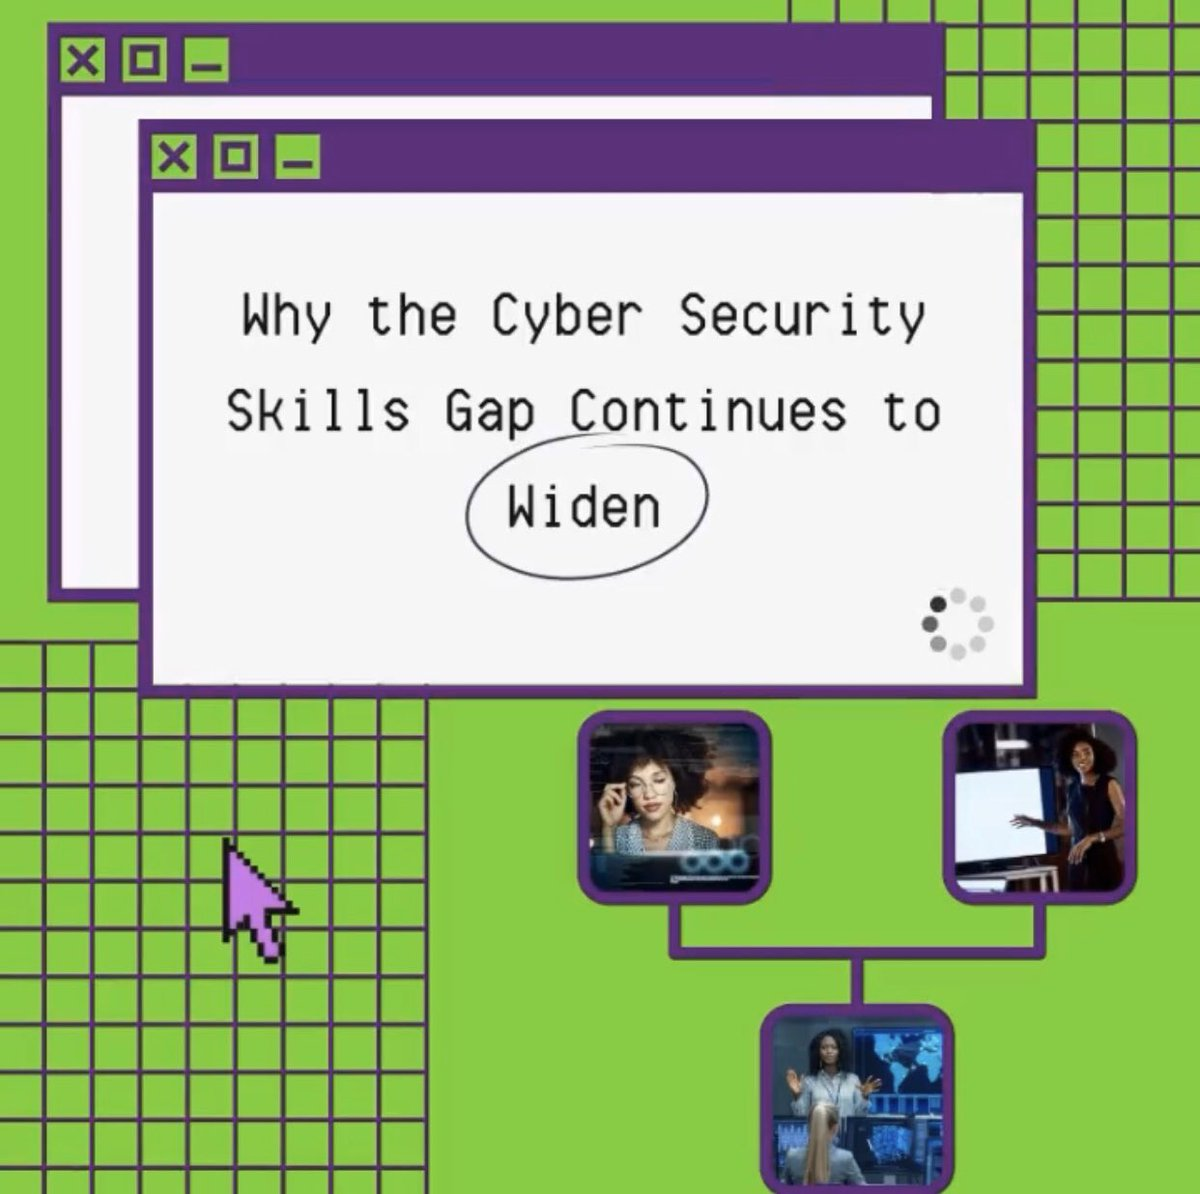 Are #CyberSecurity fields lacking professional development and skill training on the job? What do you think about the current skills gap? #techtalk https://t.co/MIVGluA0Ny